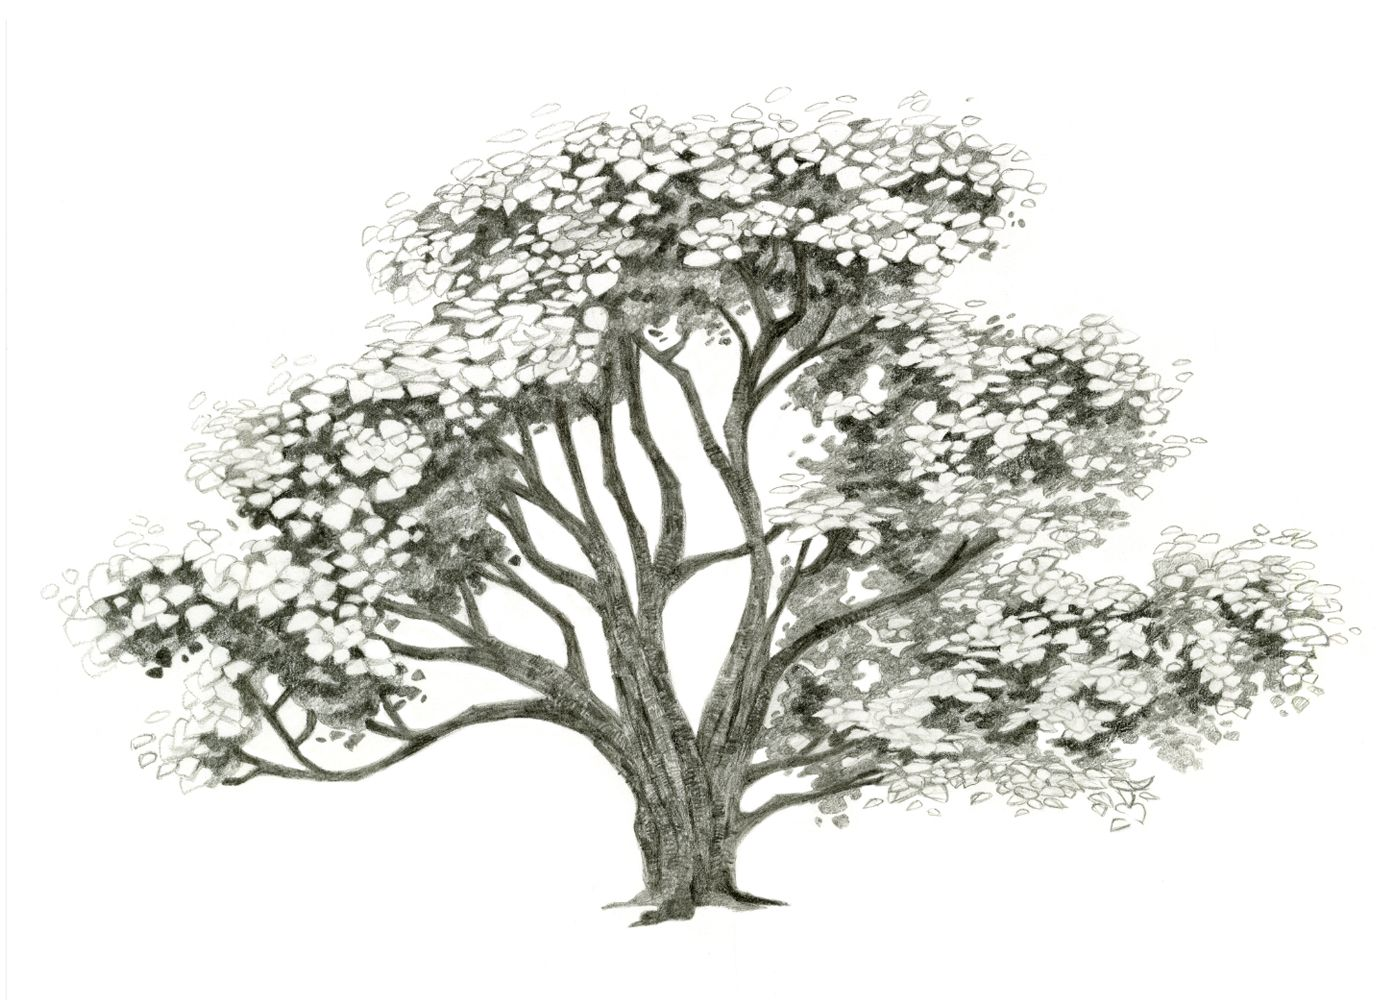 How To Draw A Realistic Tree Trunk Or Branch As Part Of